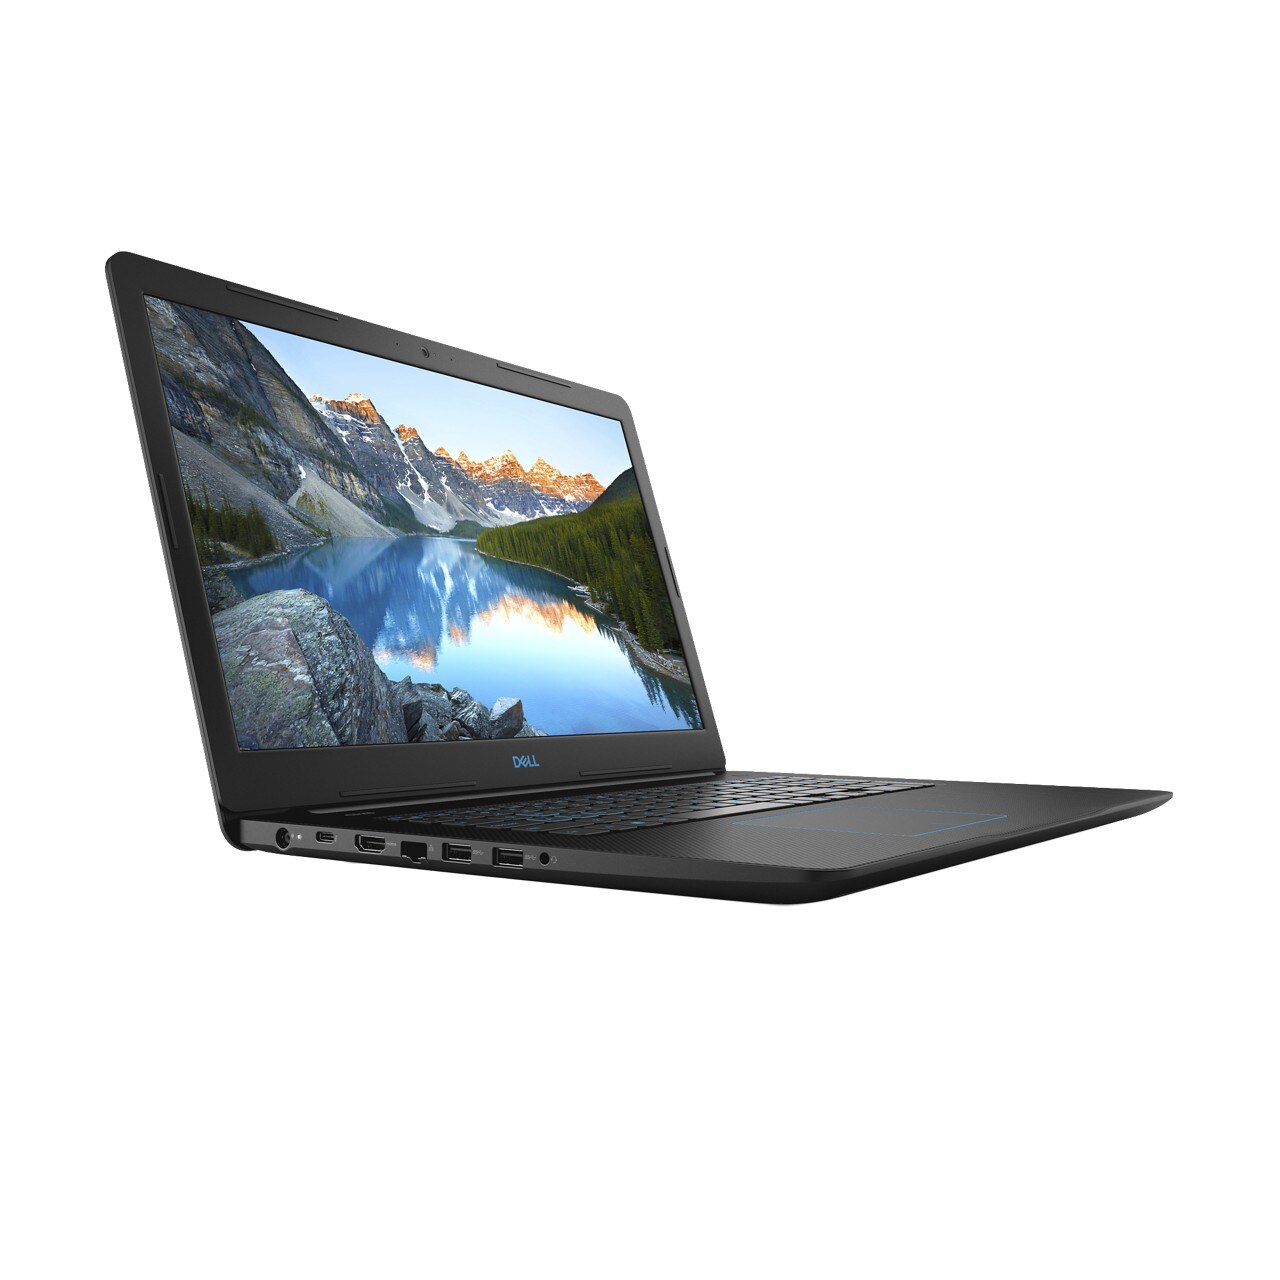 "Dell G3 17 17.3"" FHD Hex Core i7 Gaming Laptop + $9.99 Credit"